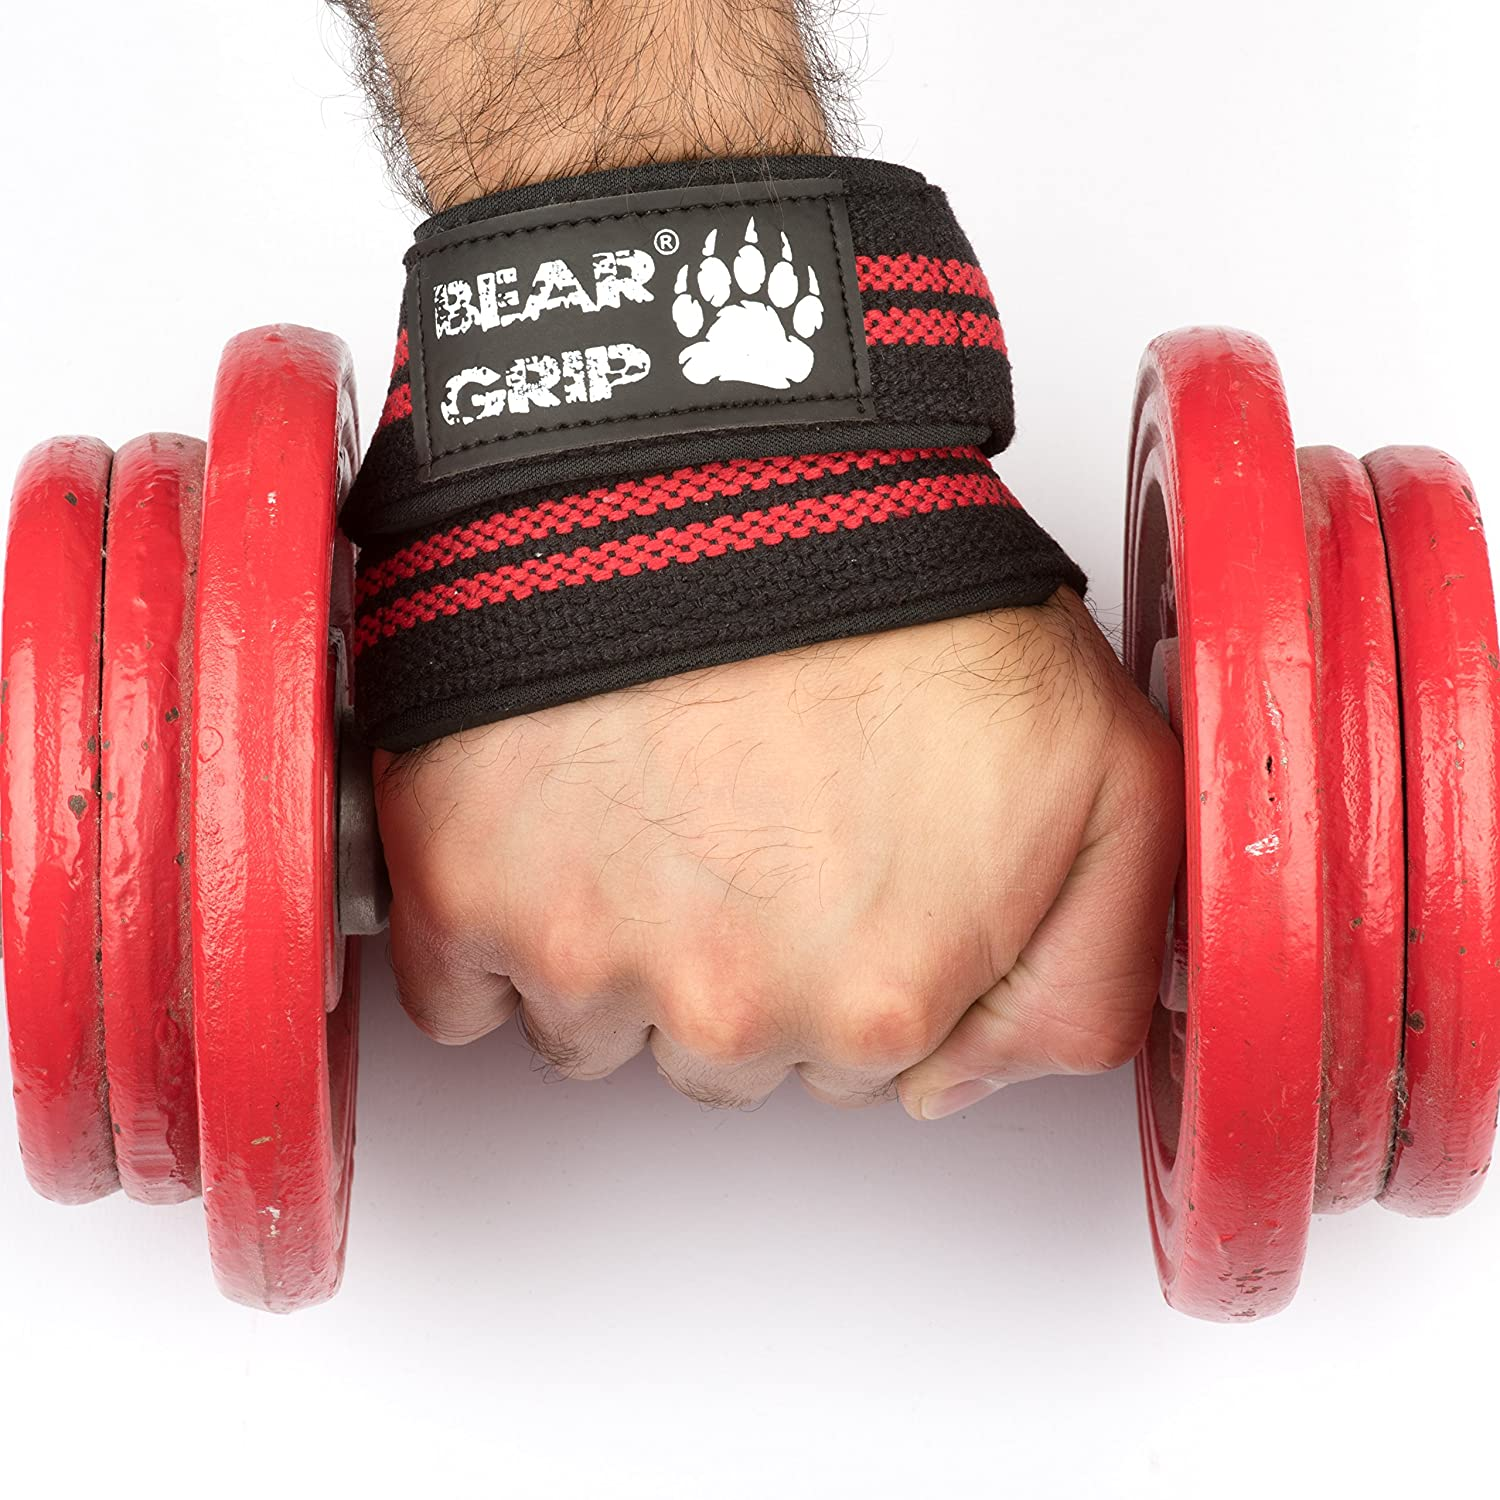 Bear Grip Premium Figure 8 Weight Lifting Straps Sold In Pairs Wrist Red Sports Outdoors